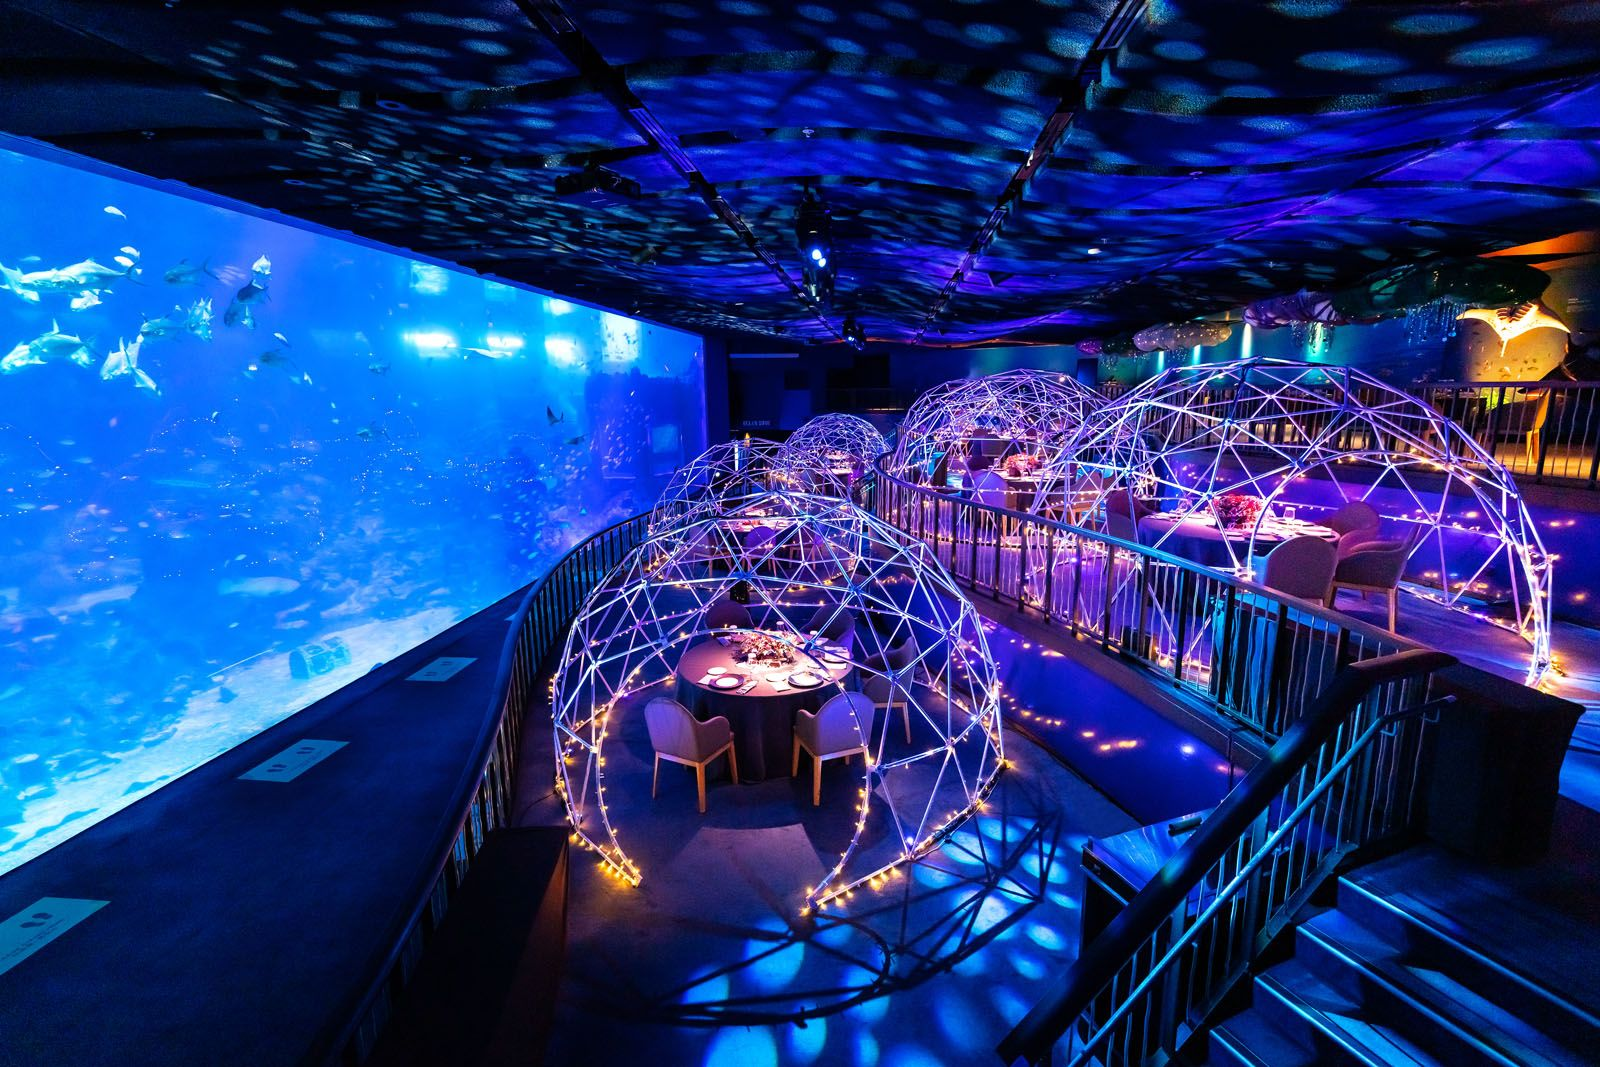 Dine Underwater at Resorts World Sentosa's New Pop-Up Restaurant in S.E.A. Aquarium